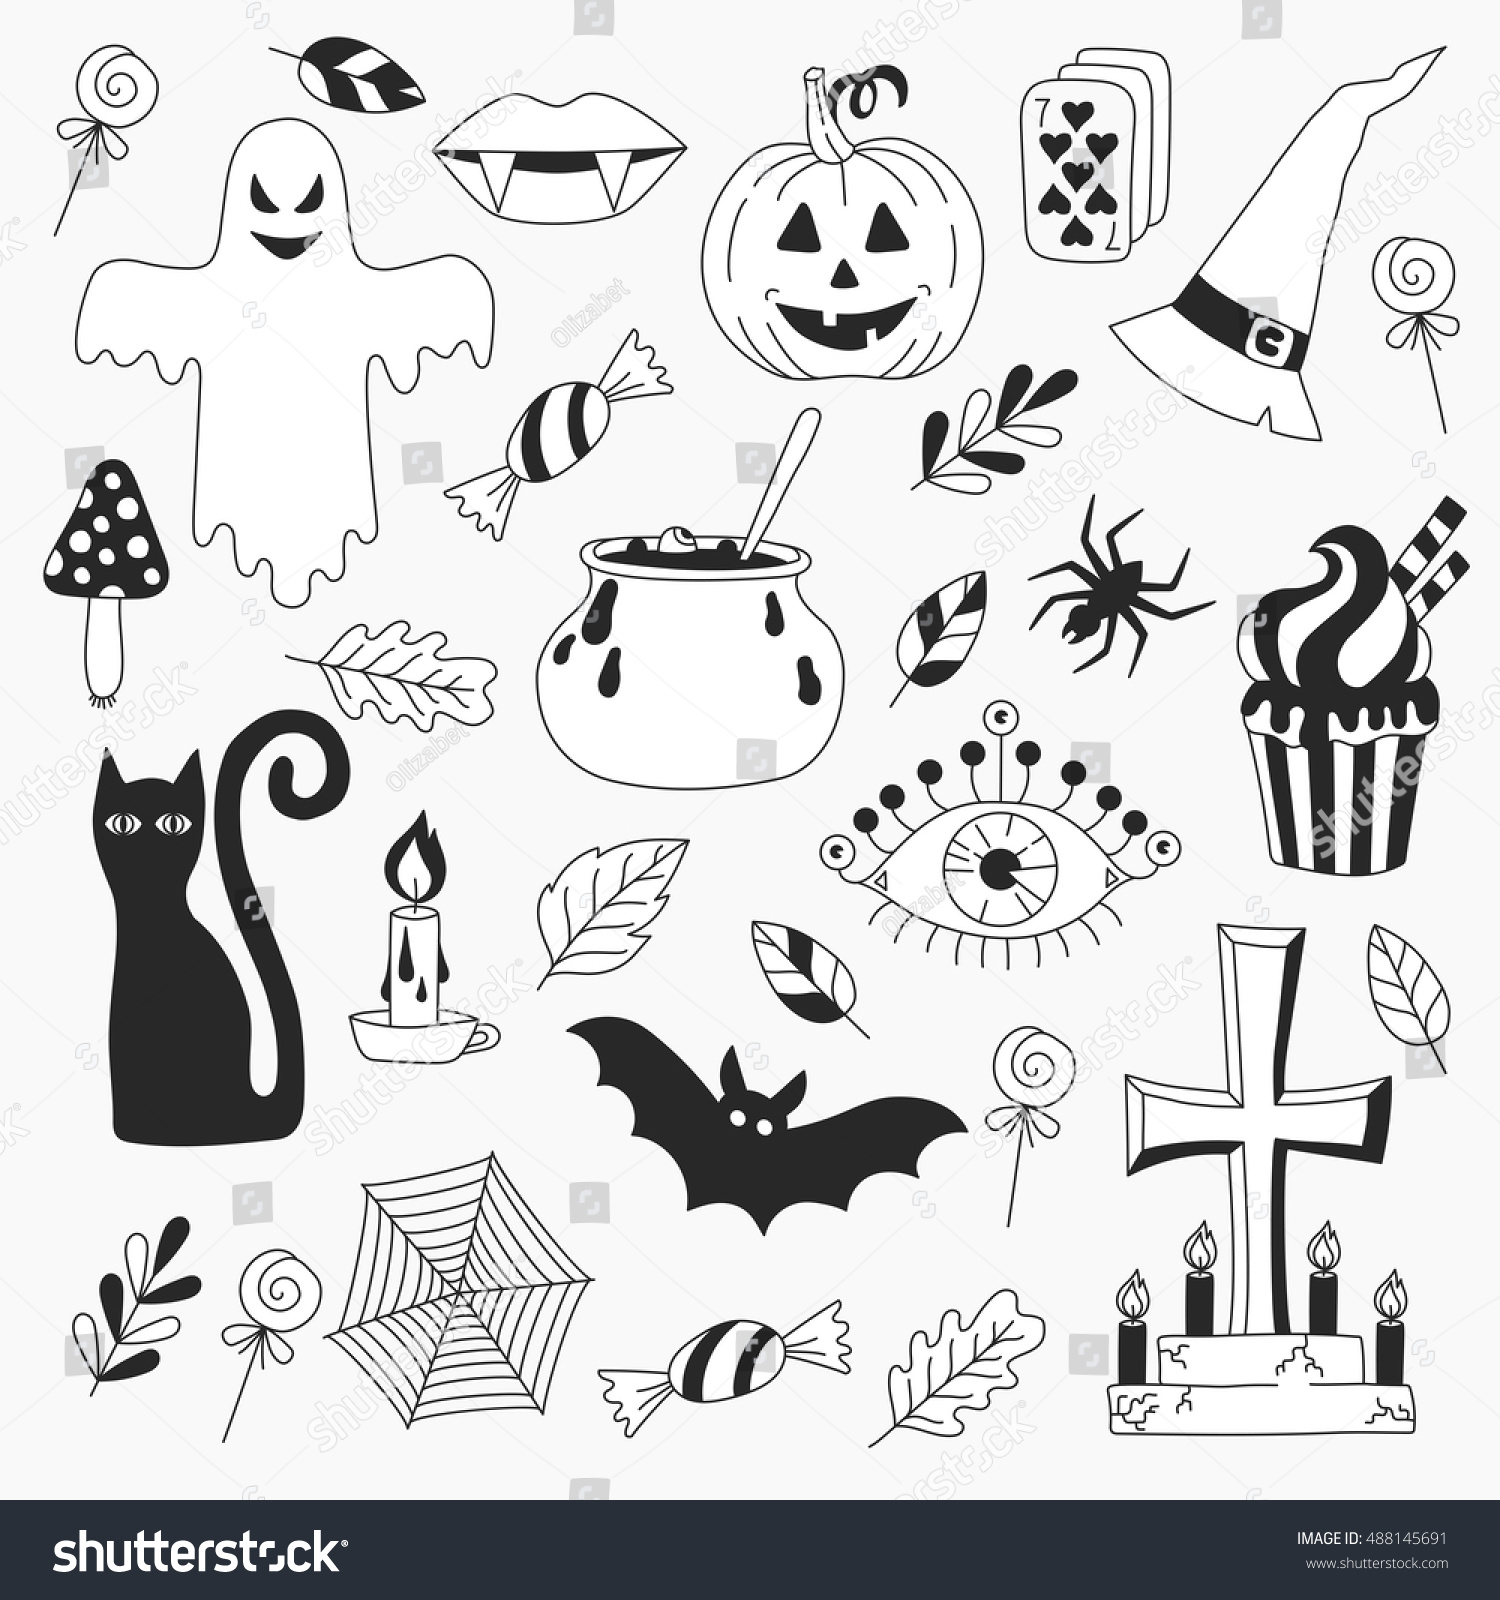 Hand Drawn Halloween Drawings Symbols Collection Stock Vector ...